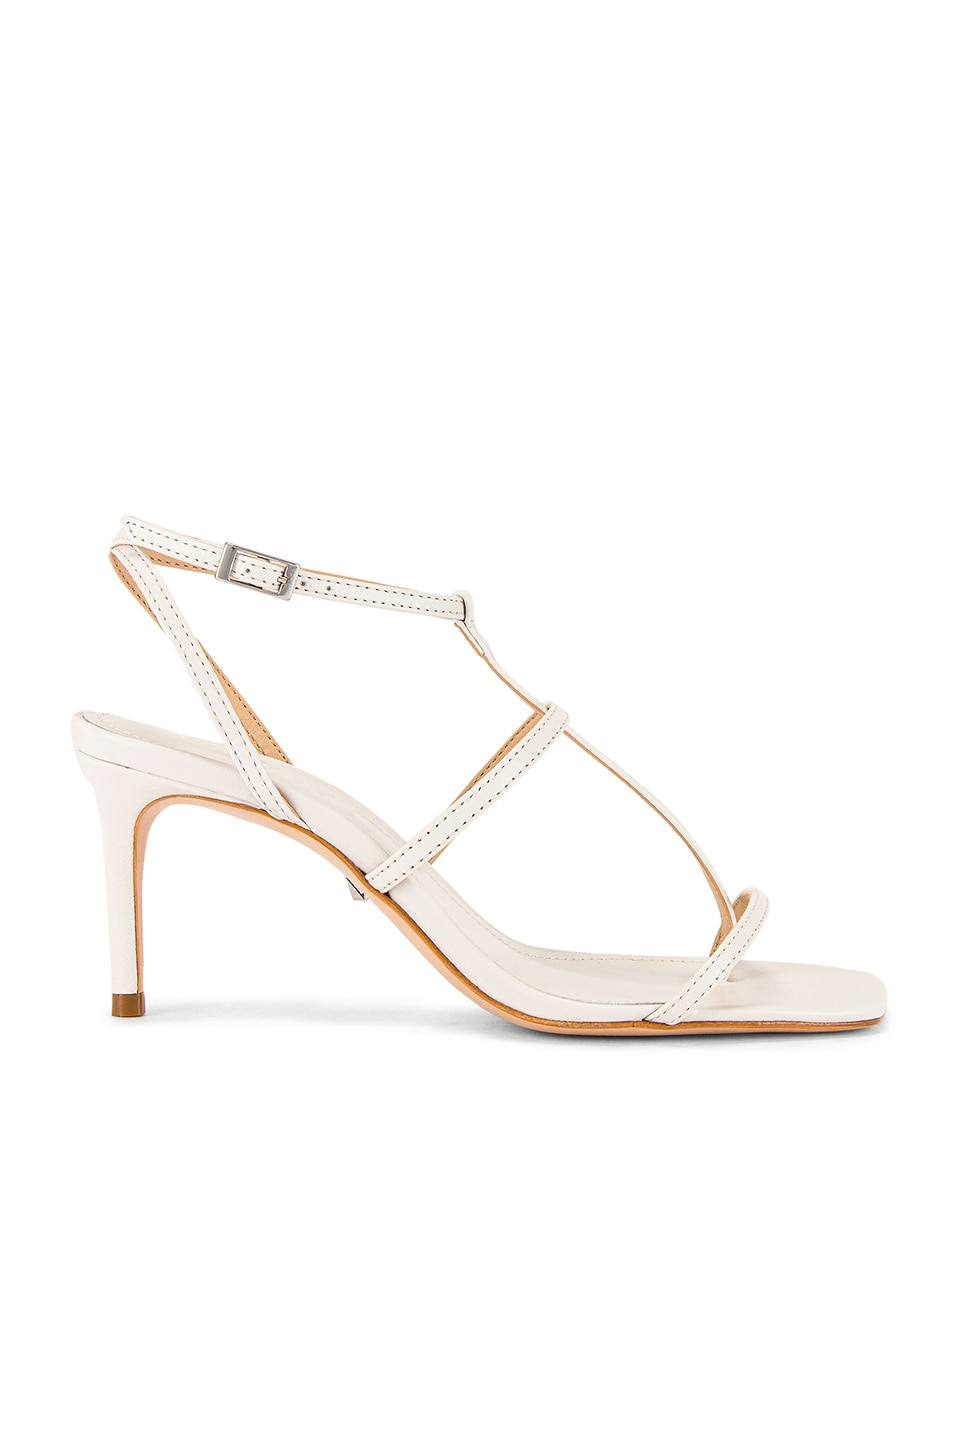 Schutz Ameena Stiletto in White